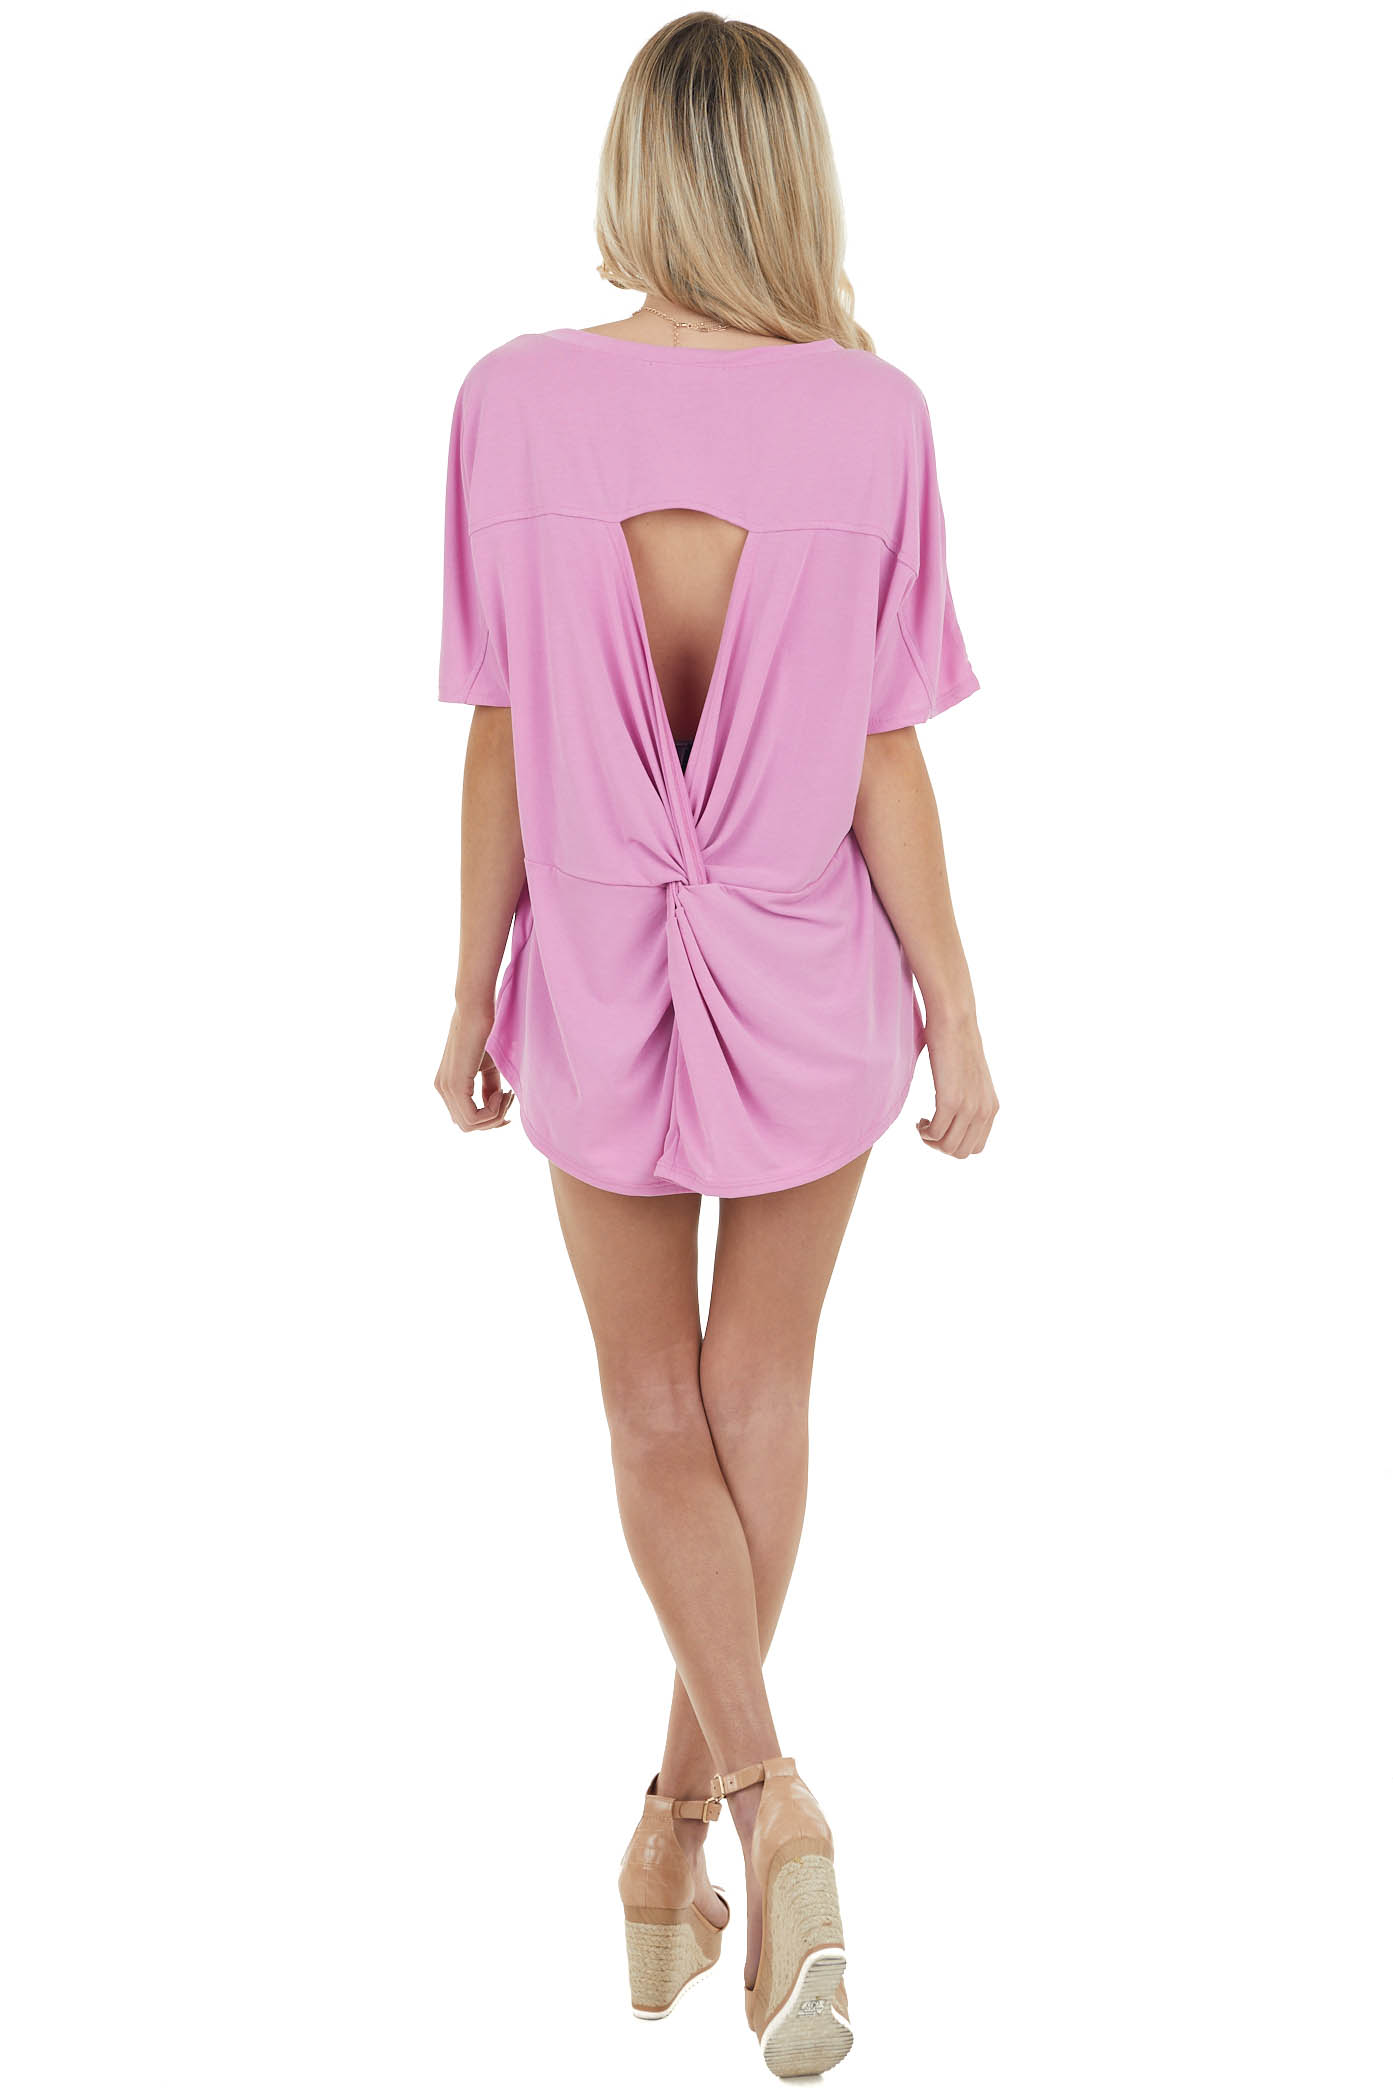 Pink Short Sleeve Soft Knit Top with Open Back Twist